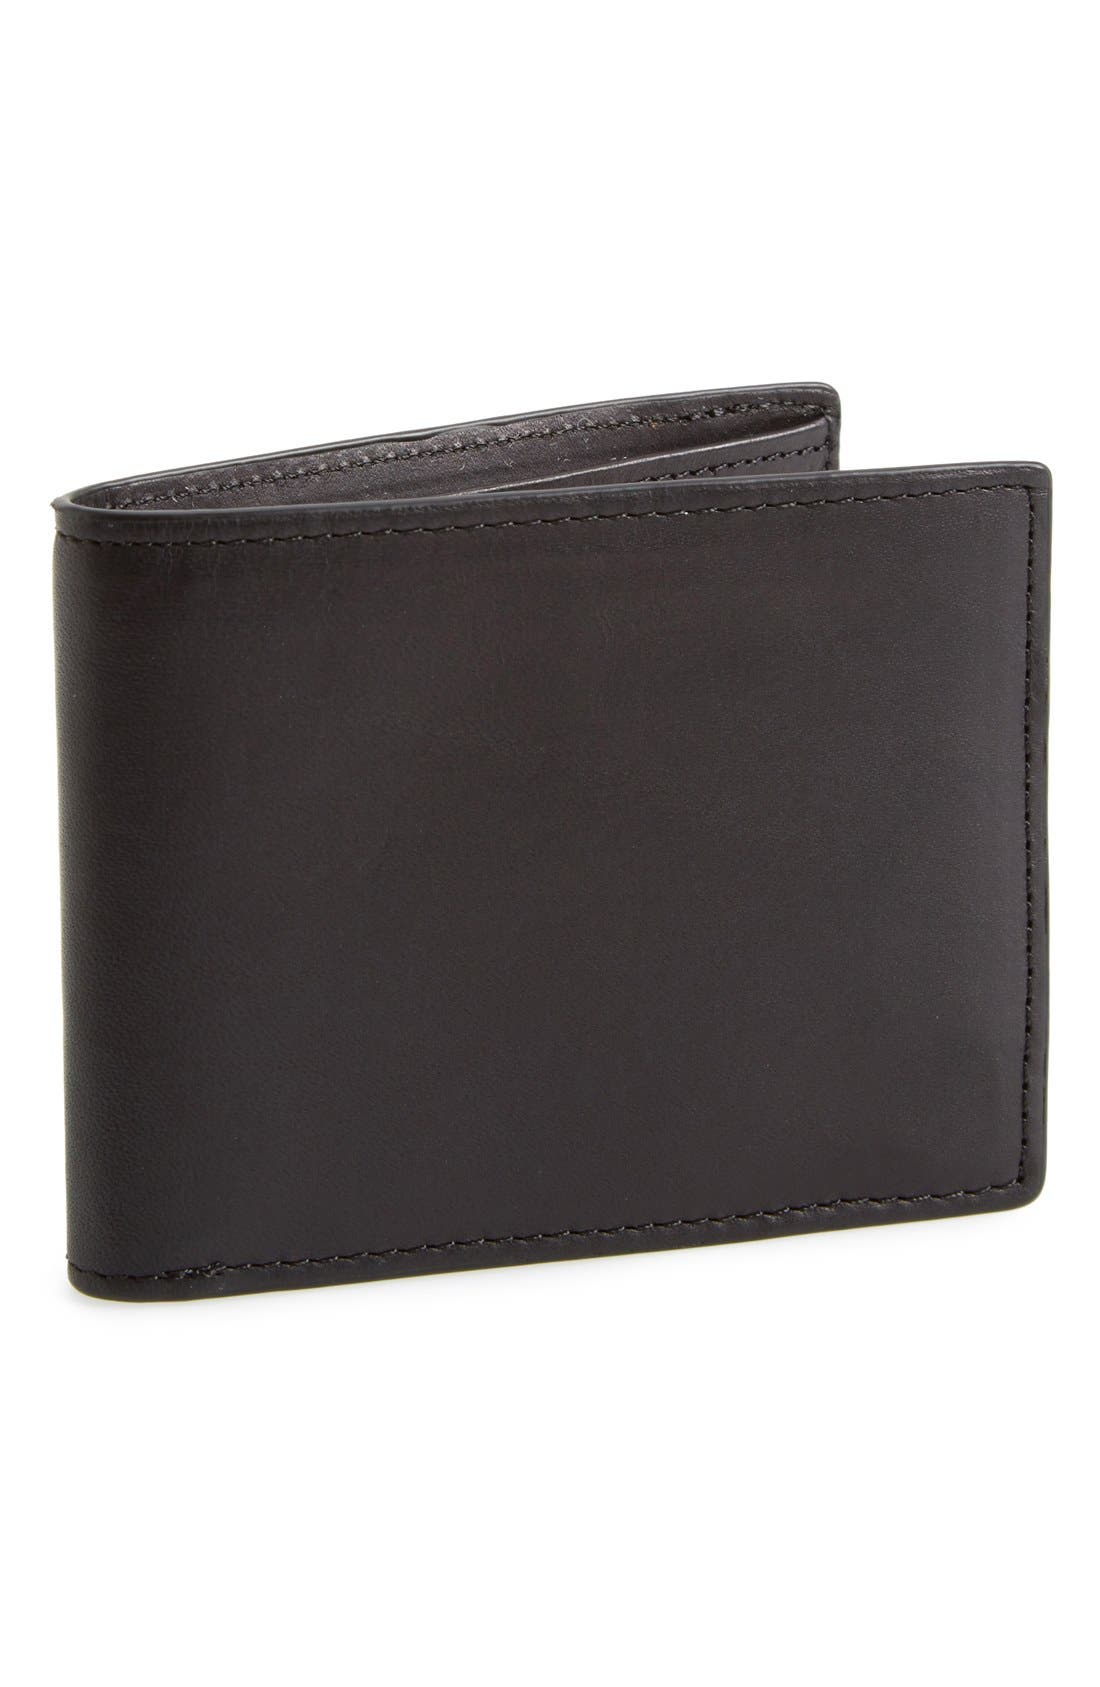 Hampshire Leather Bifold Wallet,                         Main,                         color, 002